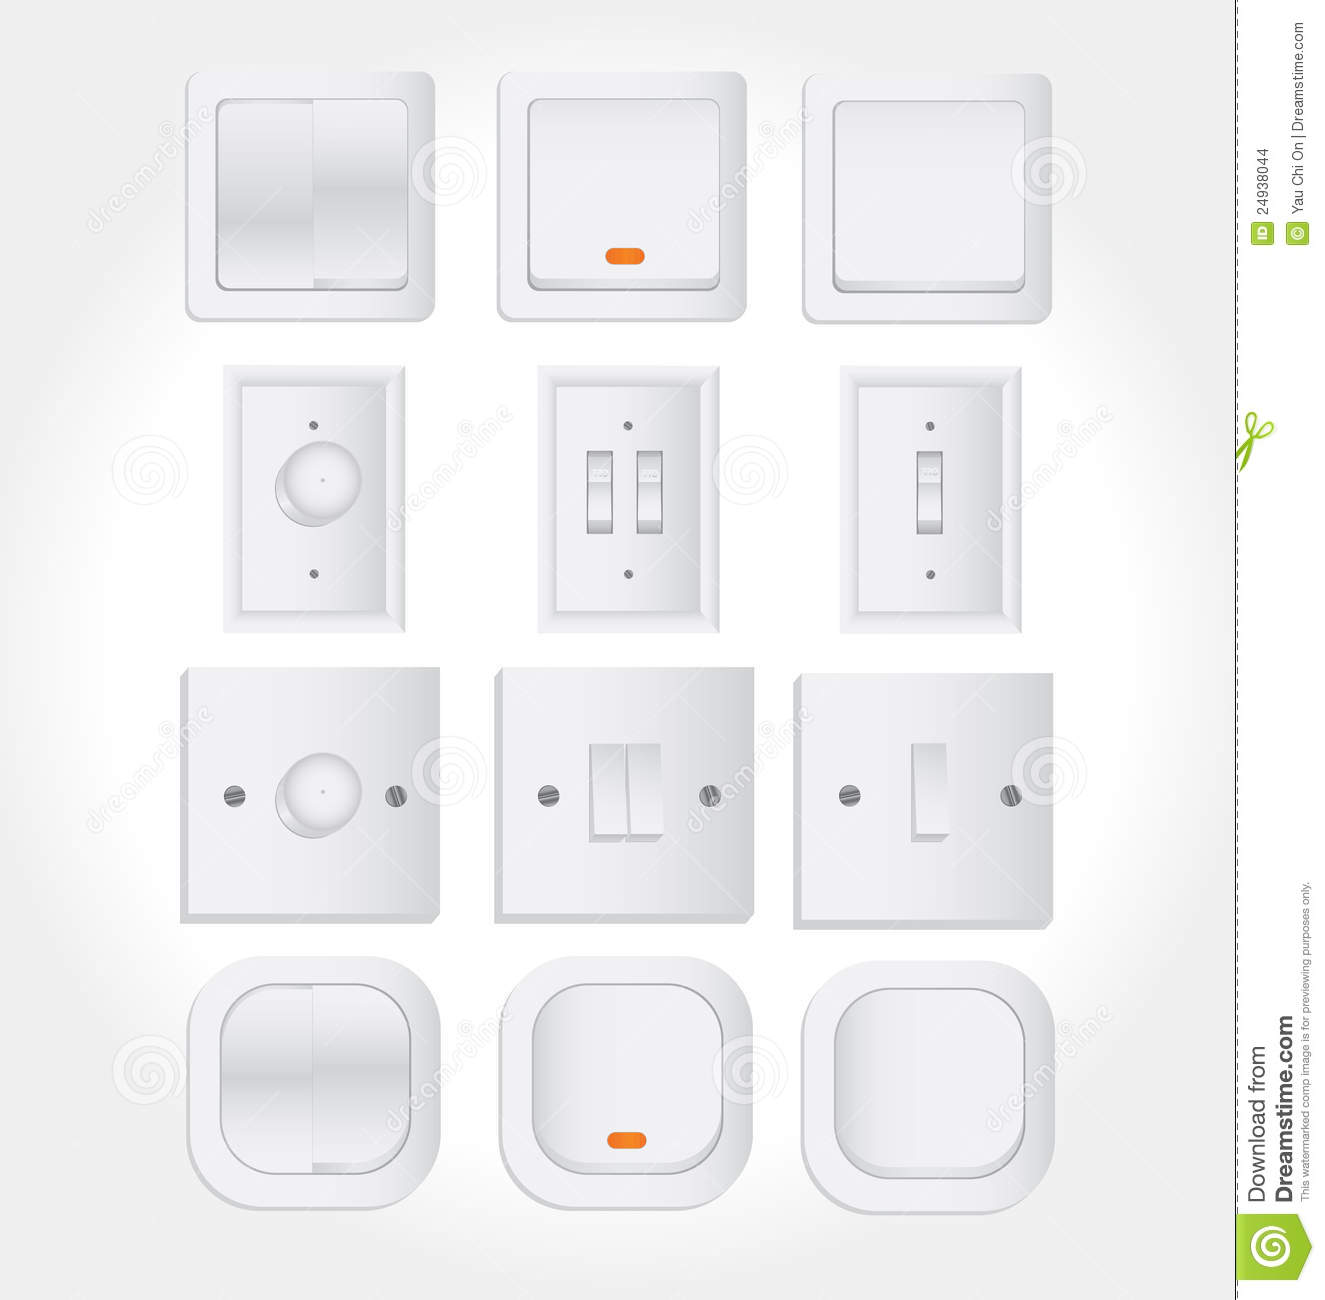 Amazing light wall switches image collection electrical diagram wall switch and light switch stock vector illustration of aloadofball Gallery